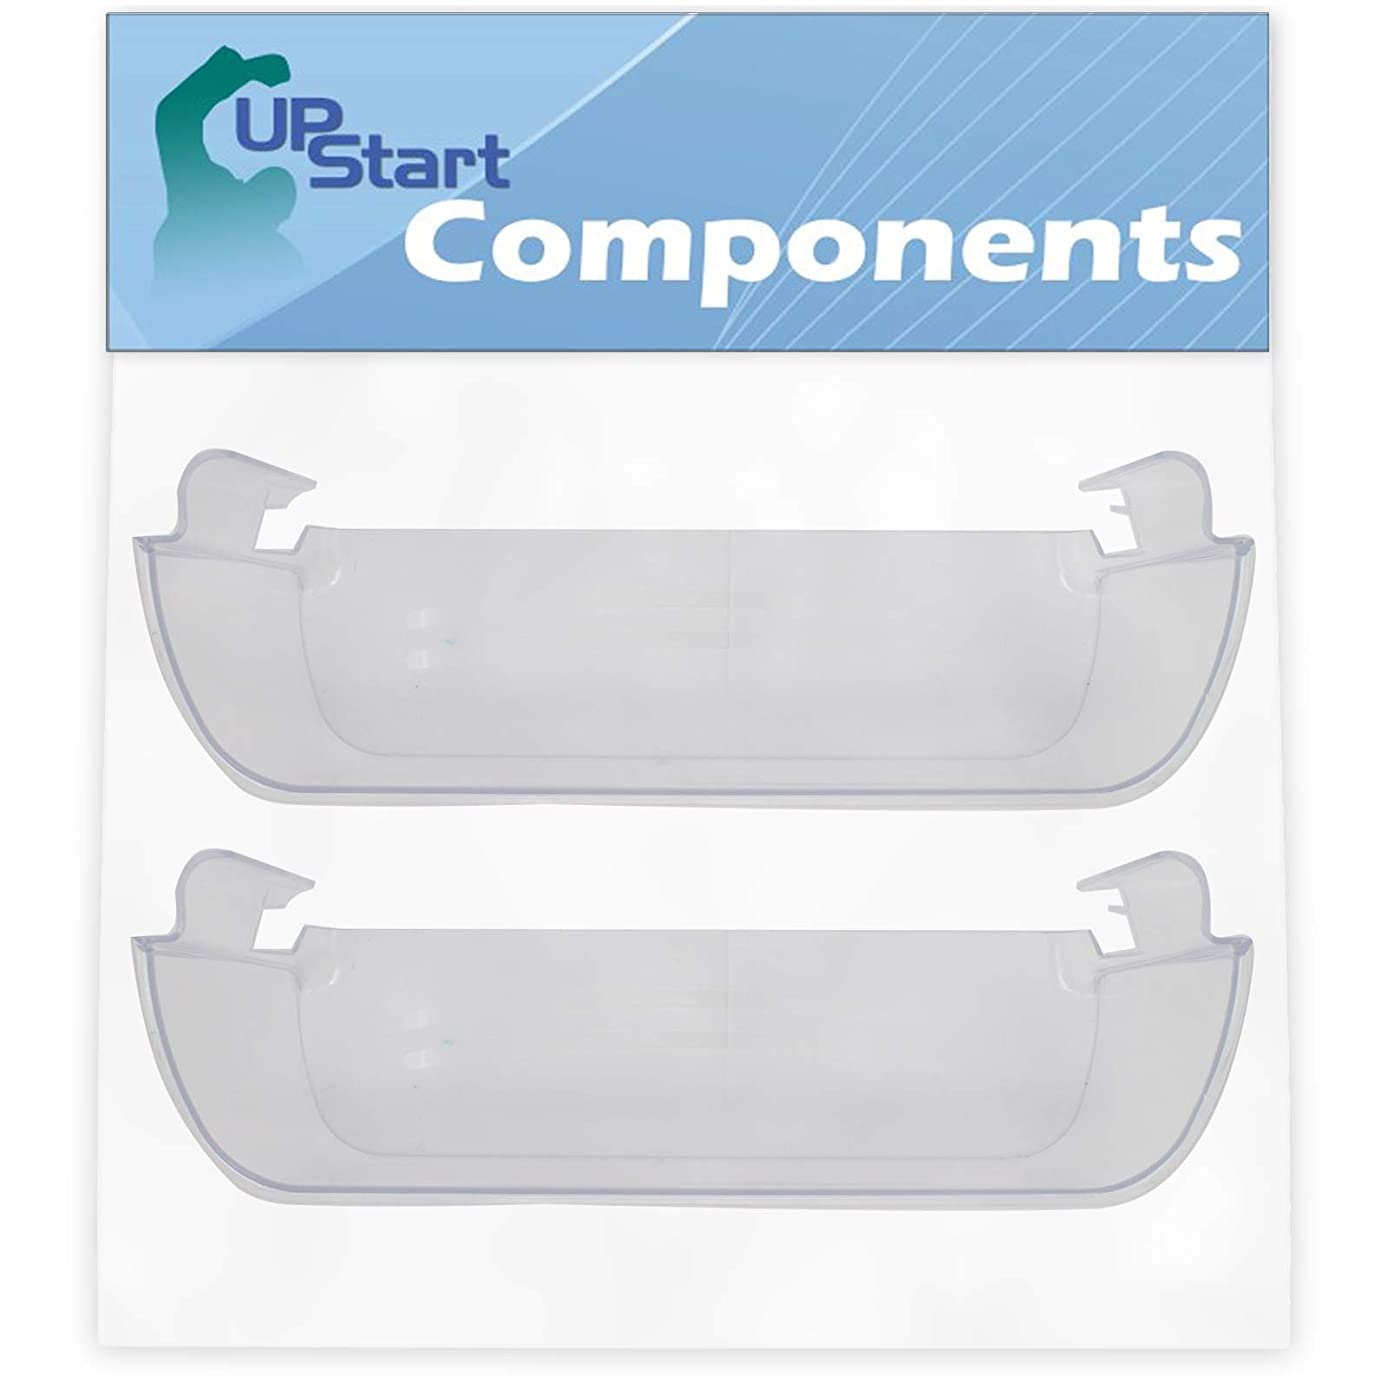 2-Pack 240323002 Refrigerator Clear Door Bin Replacement for Frigidaire FGHS2631PF3 Refrigerator - Compatible with 240323002 Door Bin - UpStart Components Brand